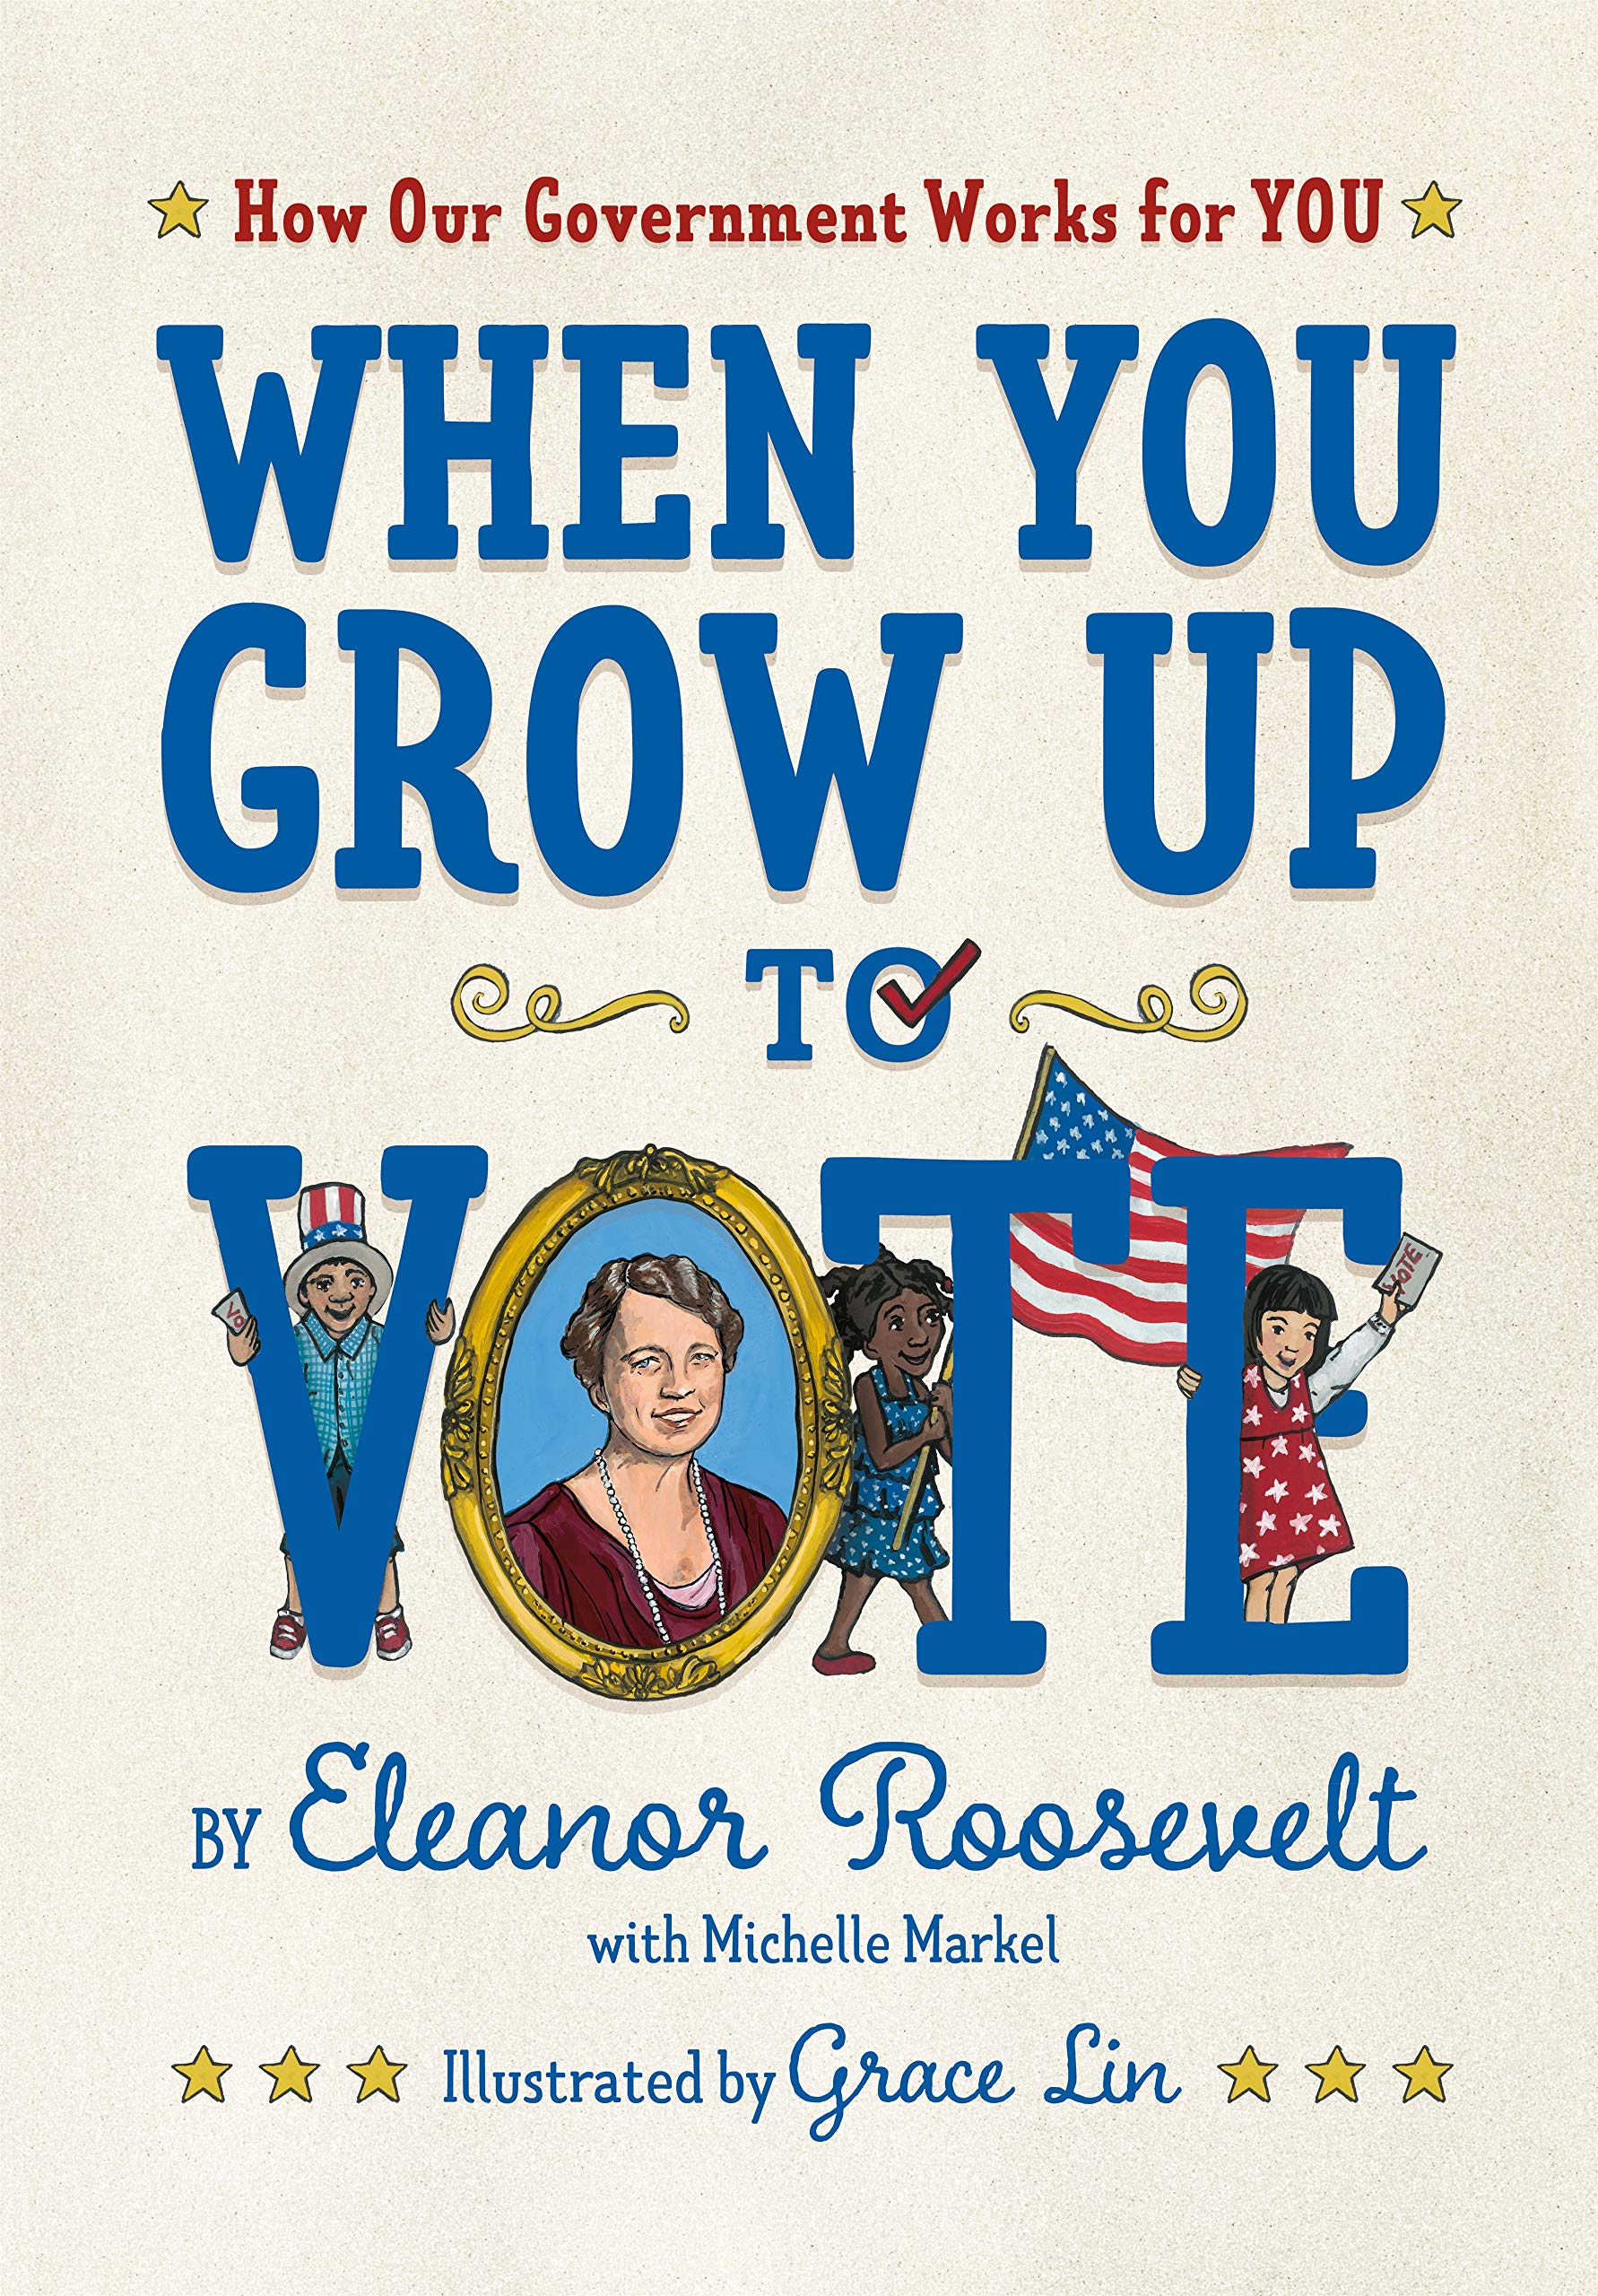 When You Grow Up to Vote Book by Eleanor Roosevelt.jpeg